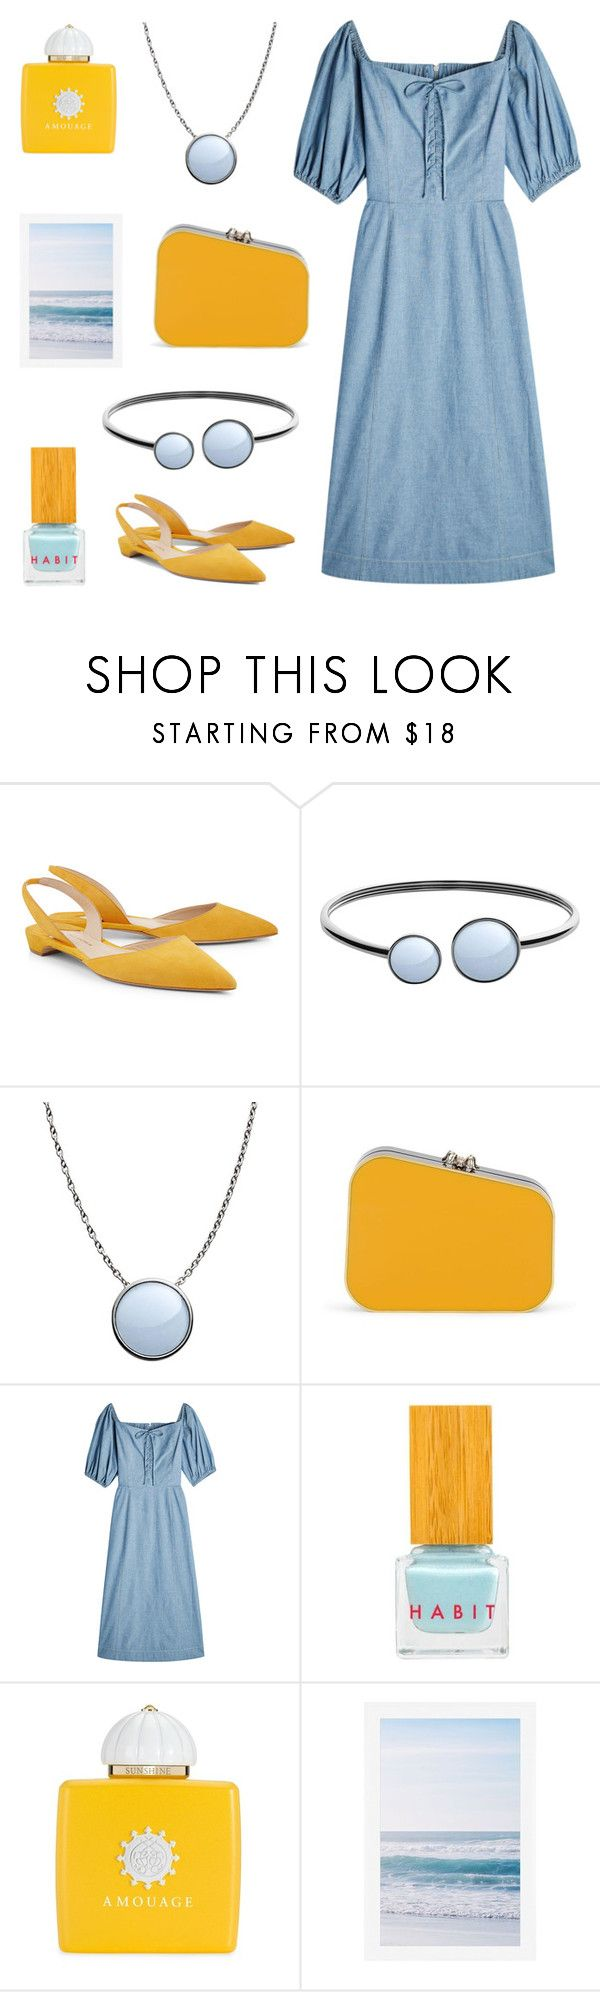 """""""Denim and marigold"""" by deepwinter ❤ liked on Polyvore featuring Paul Andrew, Skagen, Charlotte Olympia, Sea, New York, Habit Cosmetics, AMOUAGE and Pottery Barn"""